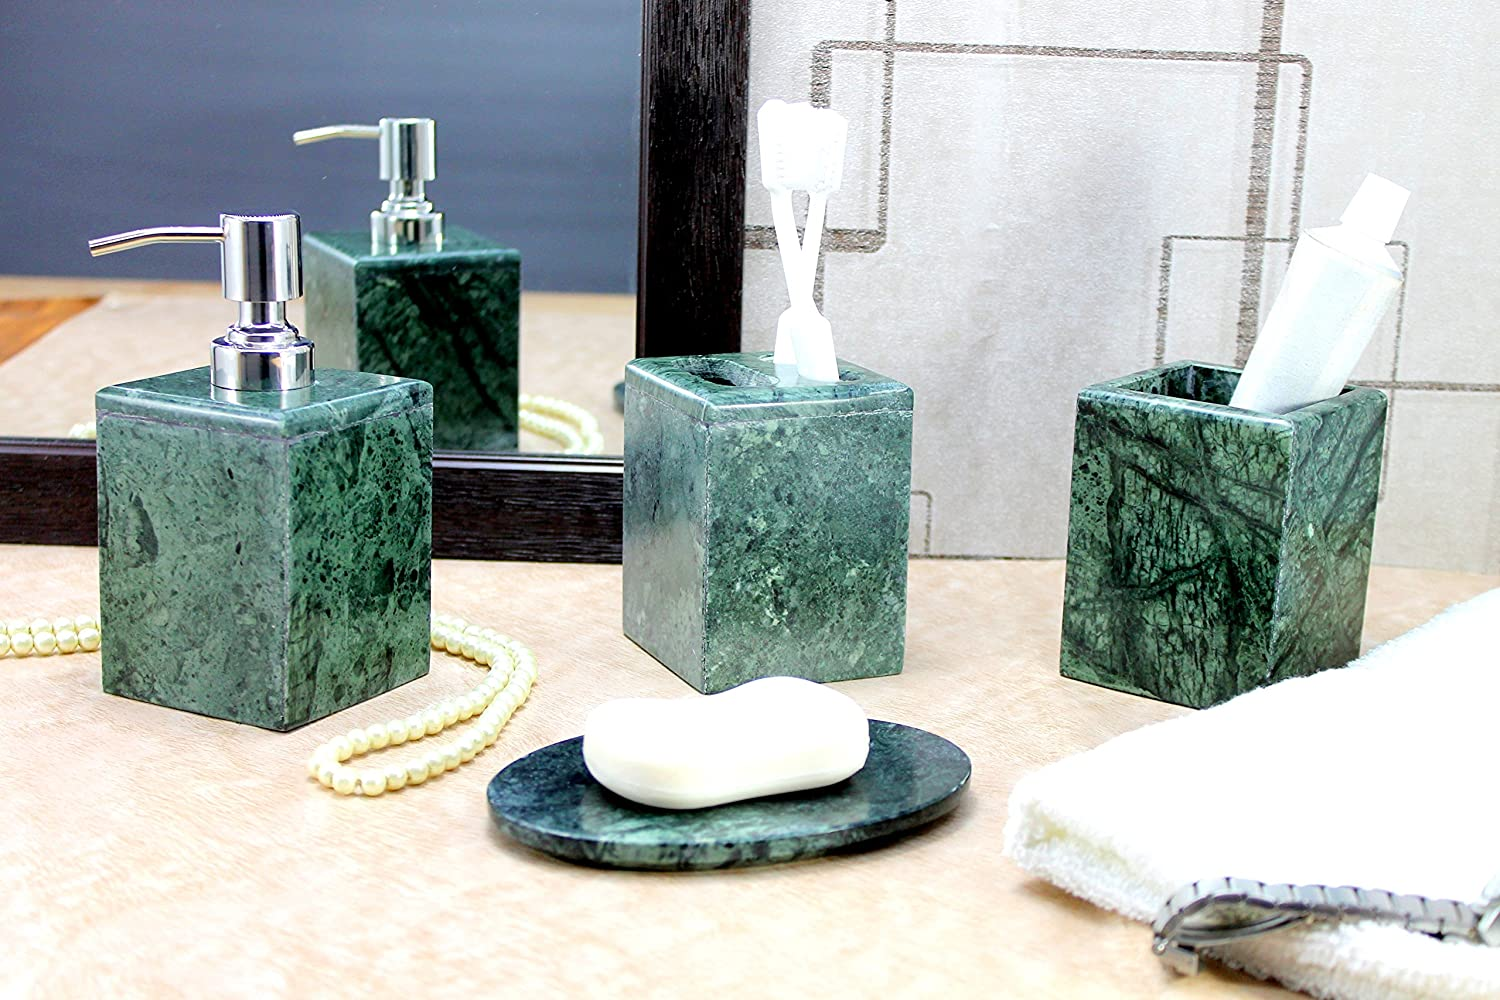 Grey bathroom accessories - Kleo Bathroom Accessory Set Made From Natural Black Grey Stone Bath Accessories Set Of 4 Includes Soap Dispenser Toothbrush Holder Utility And Soap